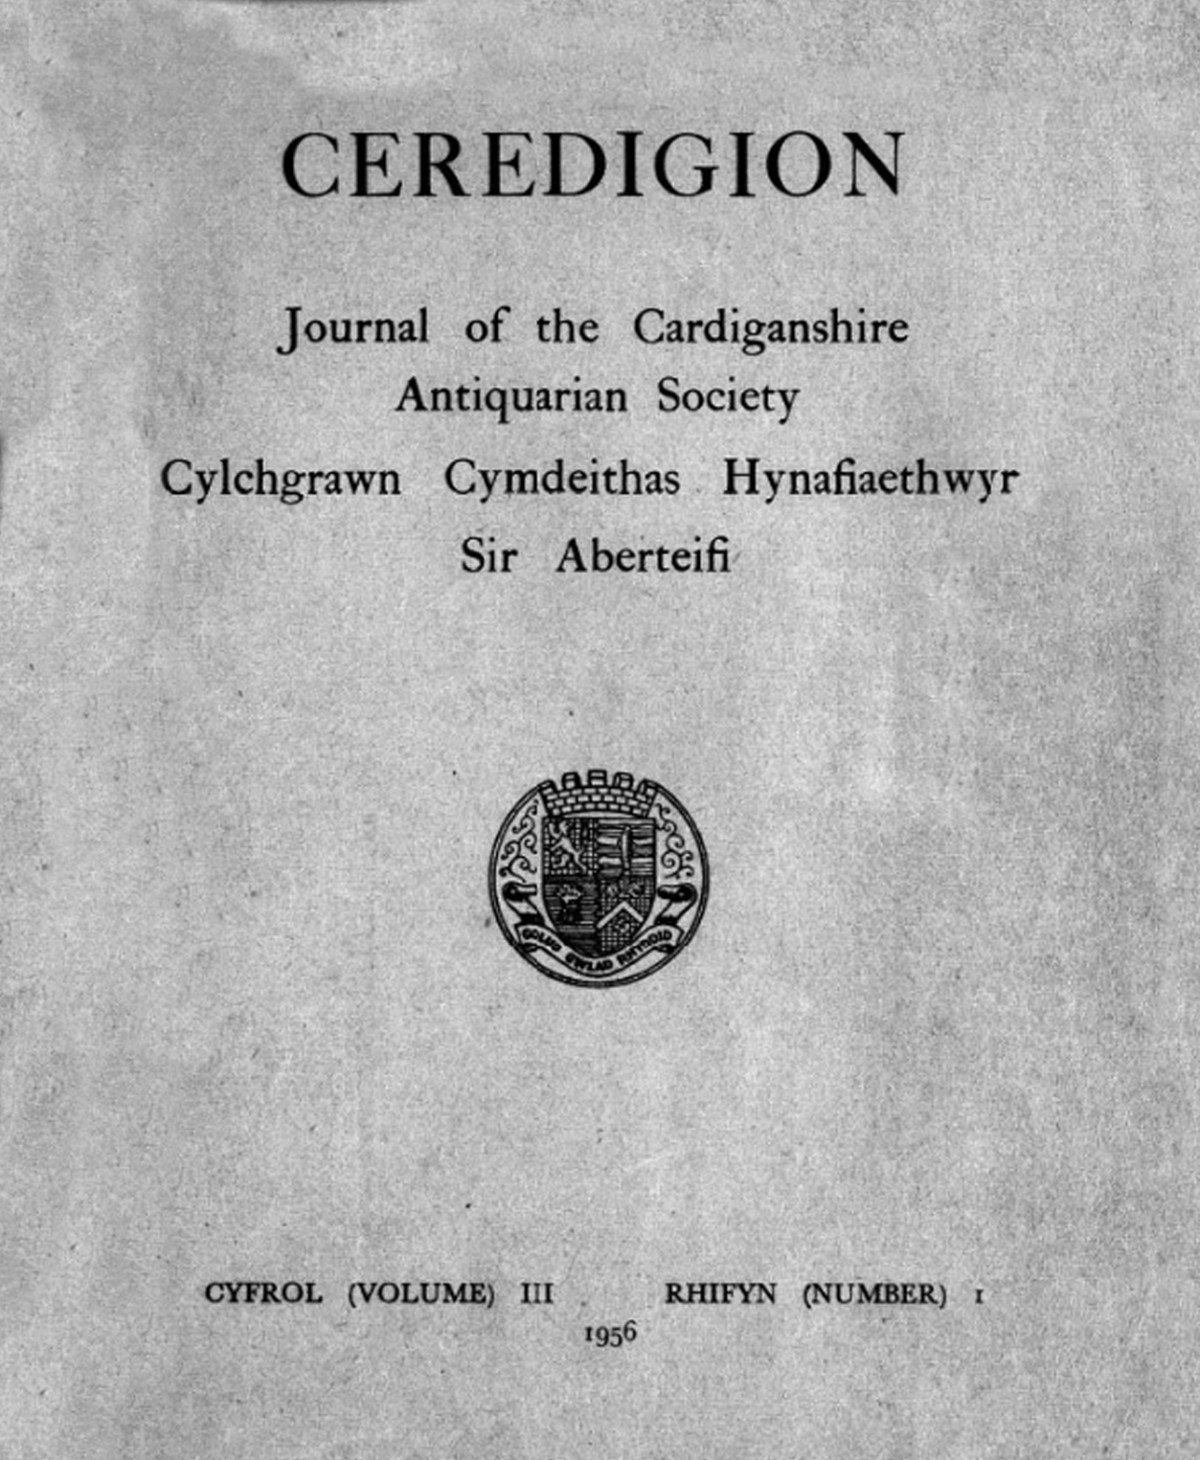 Ceredigion – Journal of the Cardiganshire Antiquarian Society, 1956 Vol III No I